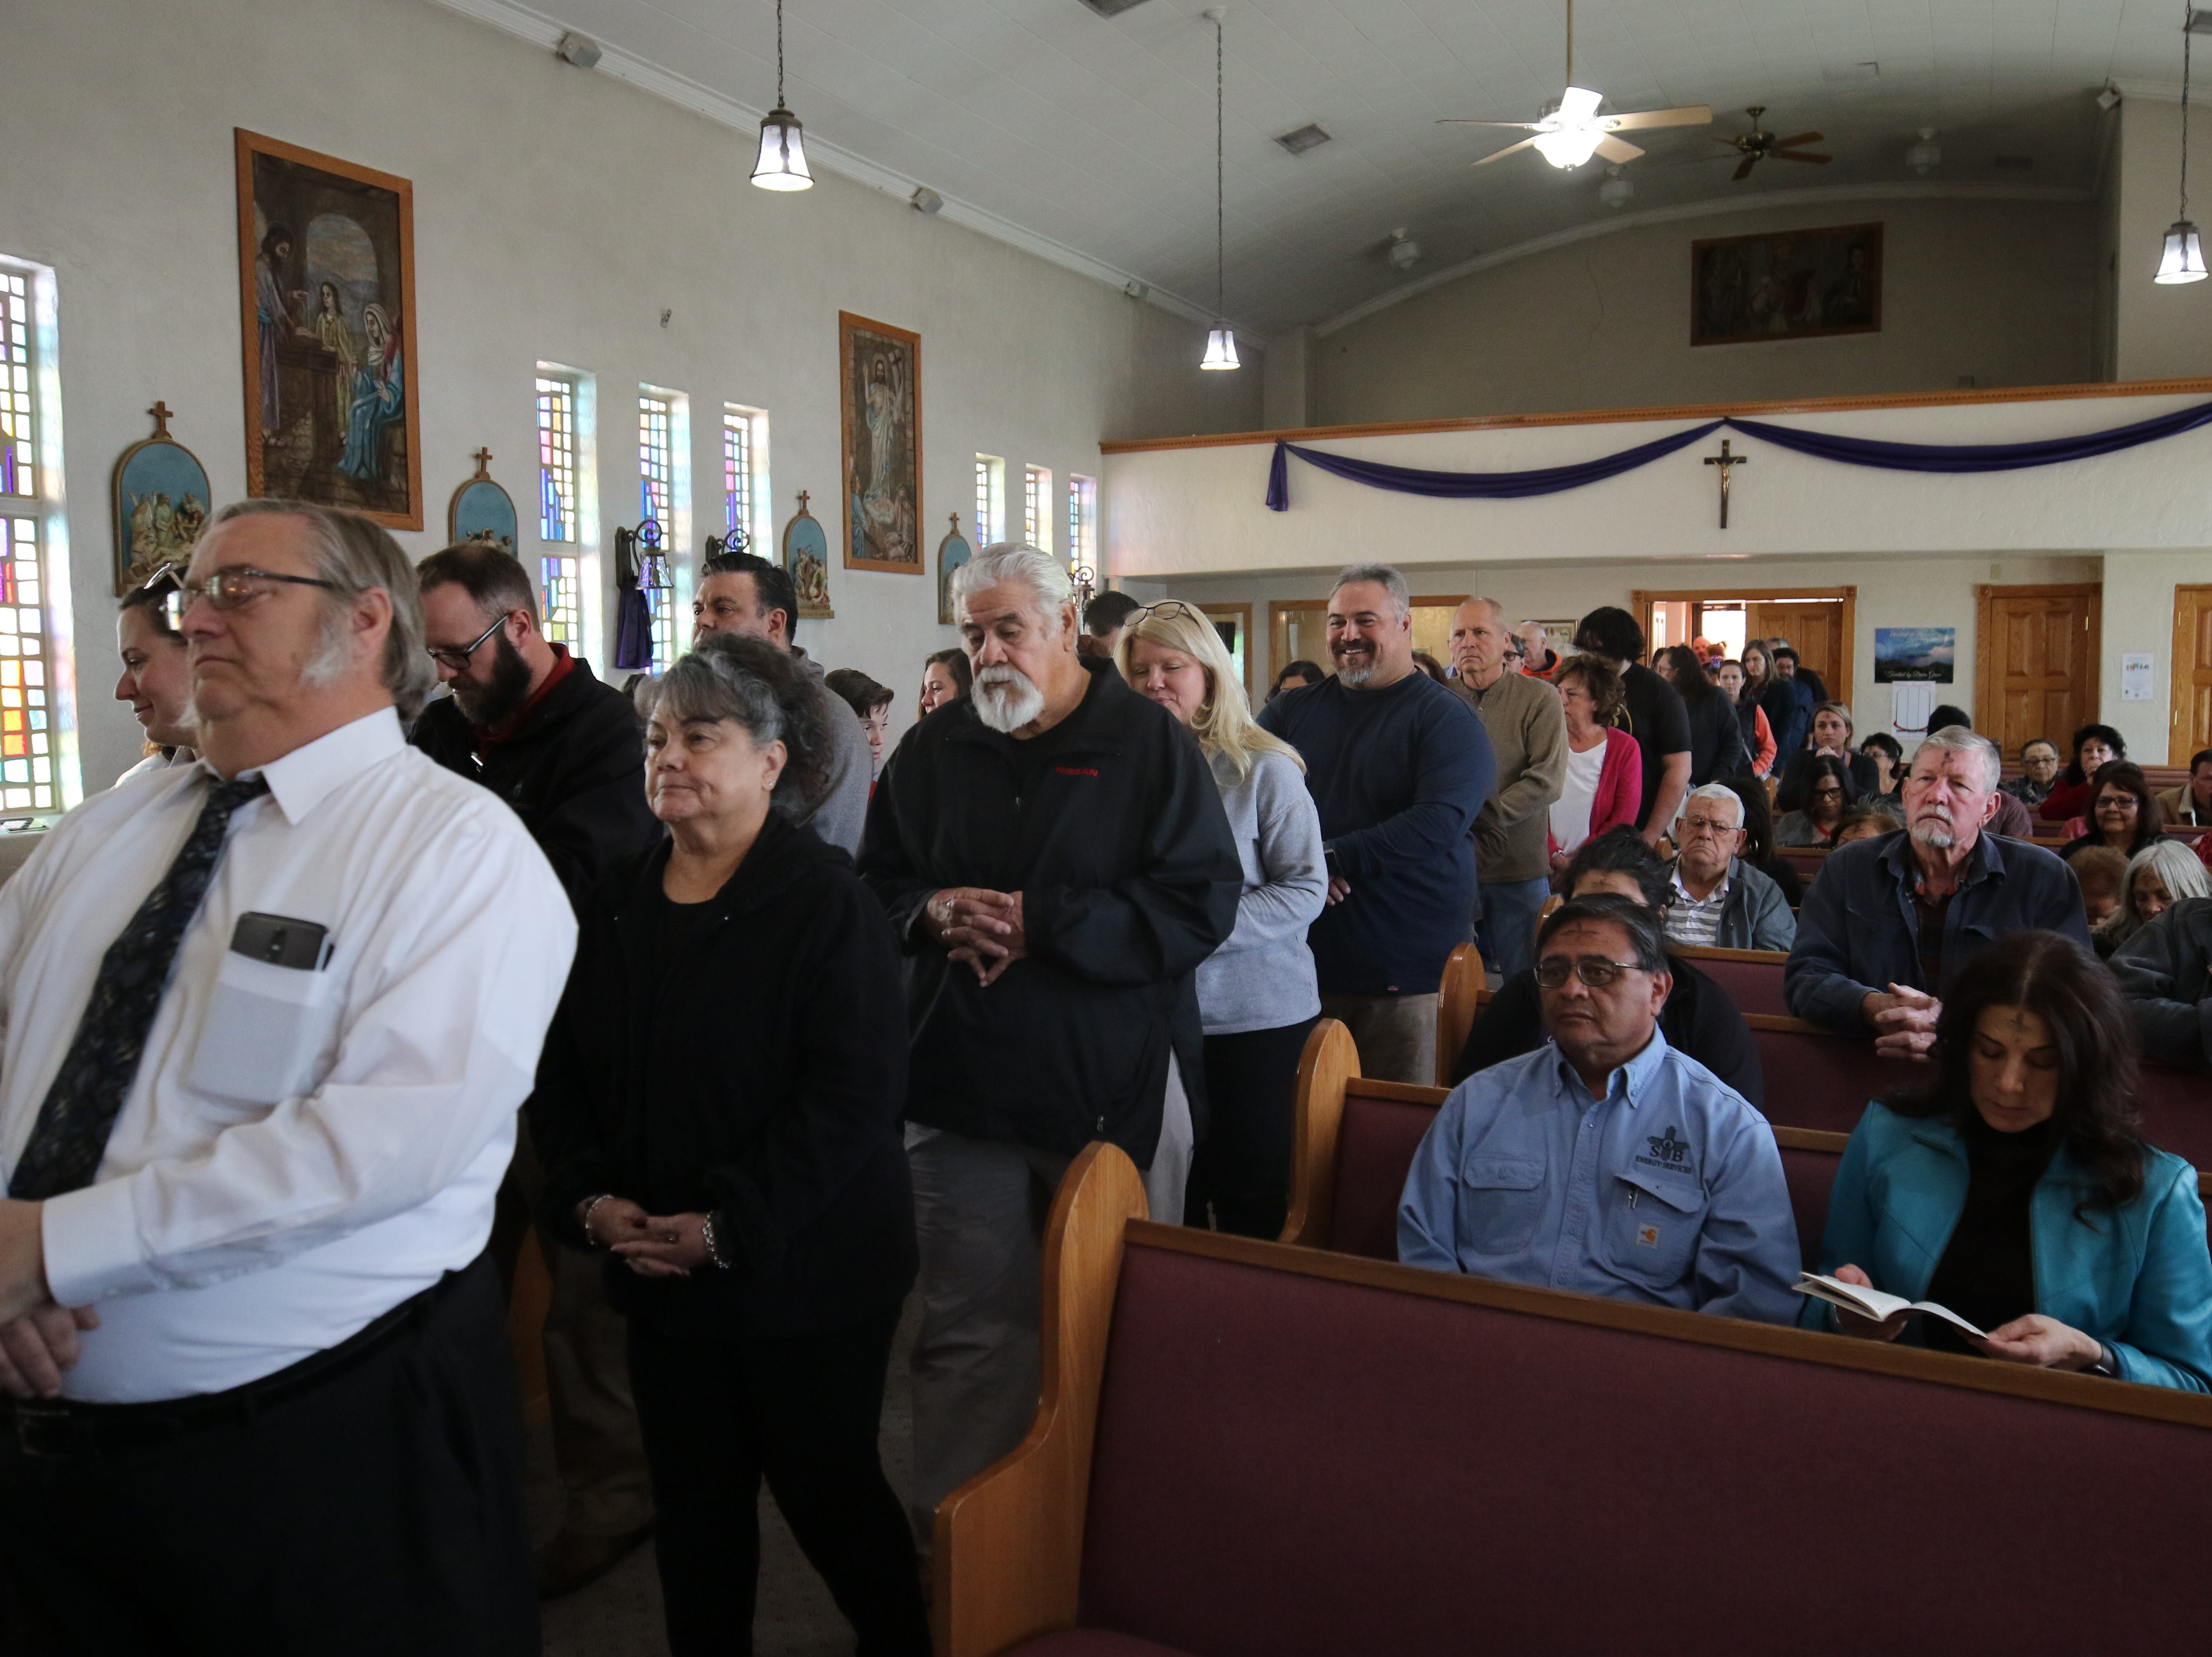 Attendees line up to get their ashes at an Ash Wednesday mass, March 6, 2019 at St Edward Catholic Church.